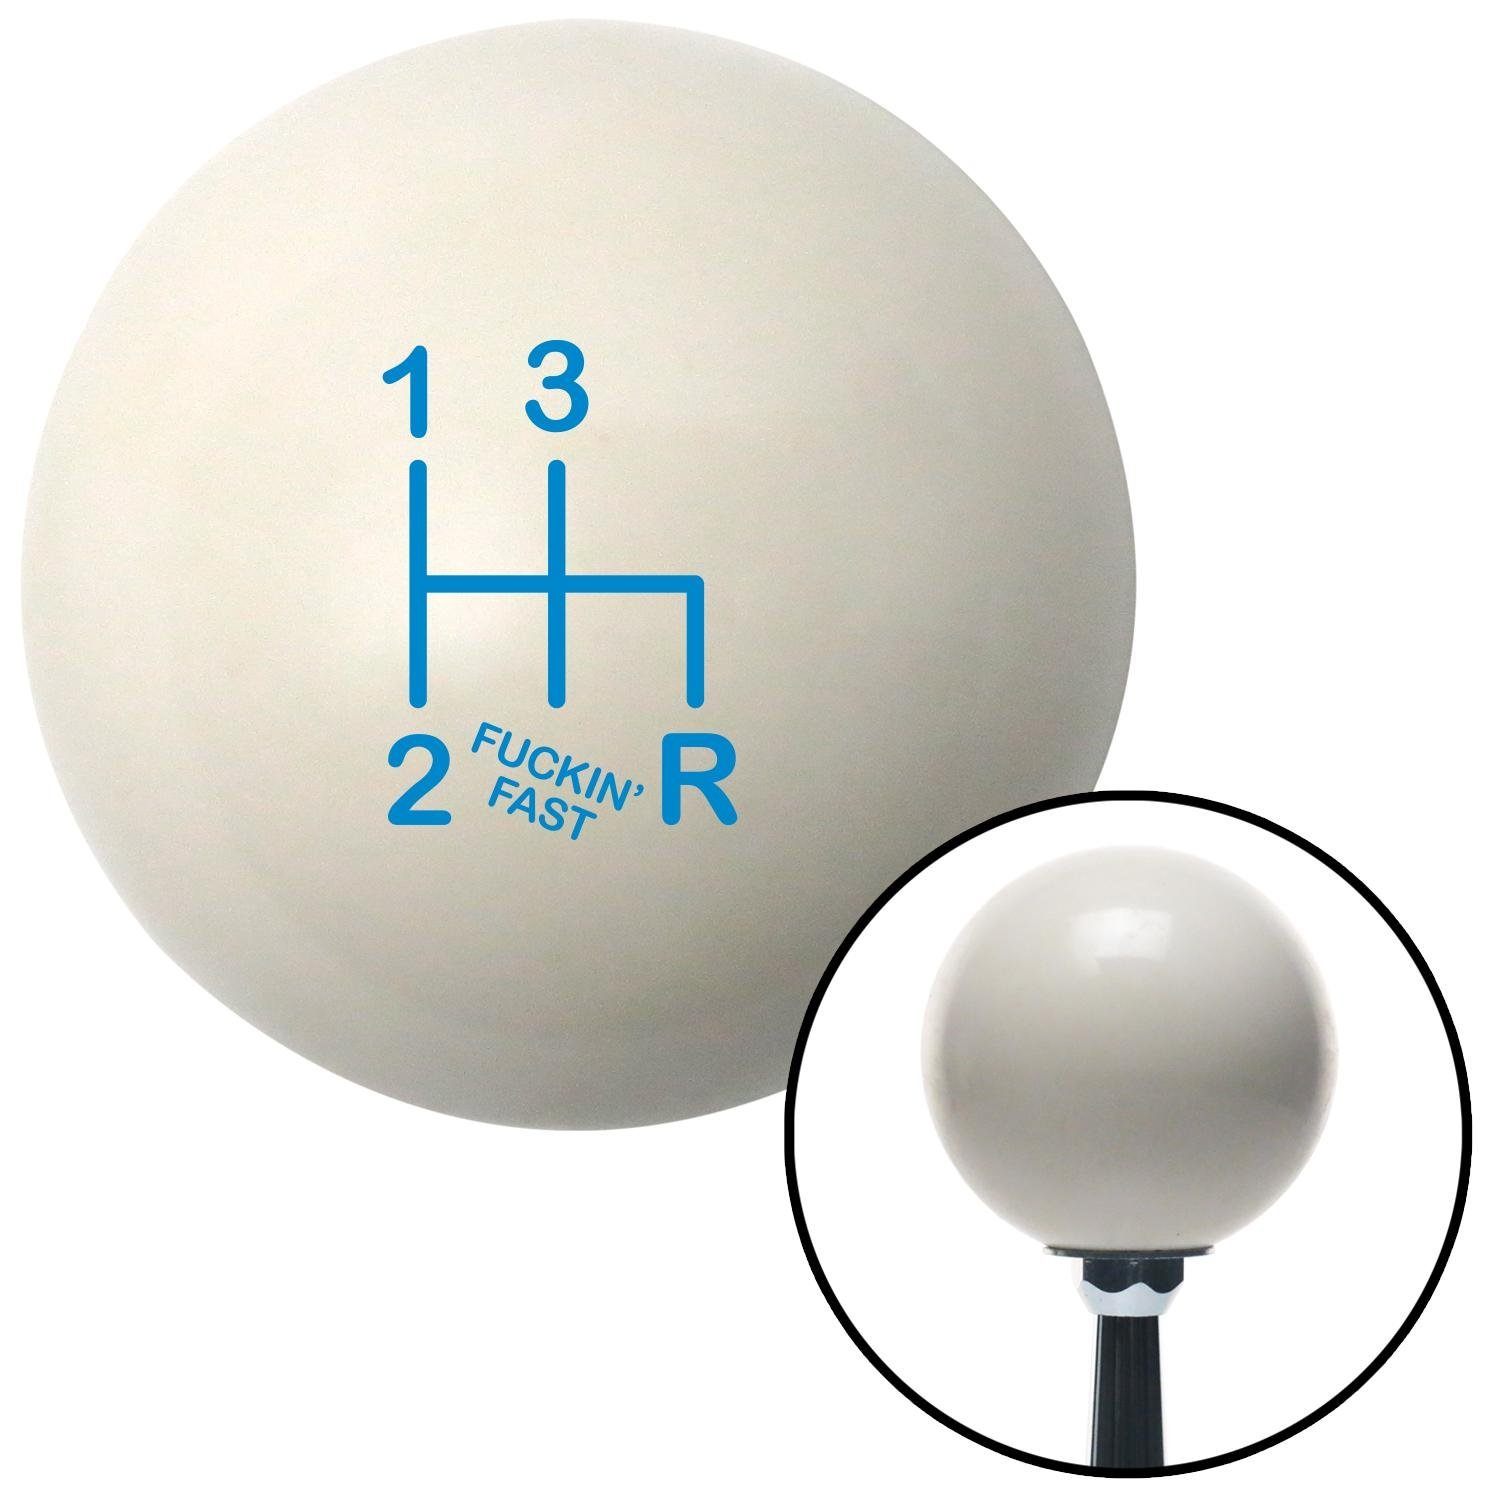 American Shifter 77023 Ivory Shift Knob with M16 x 1.5 Insert Blue Shift Pattern Fcking Fast Style 6n